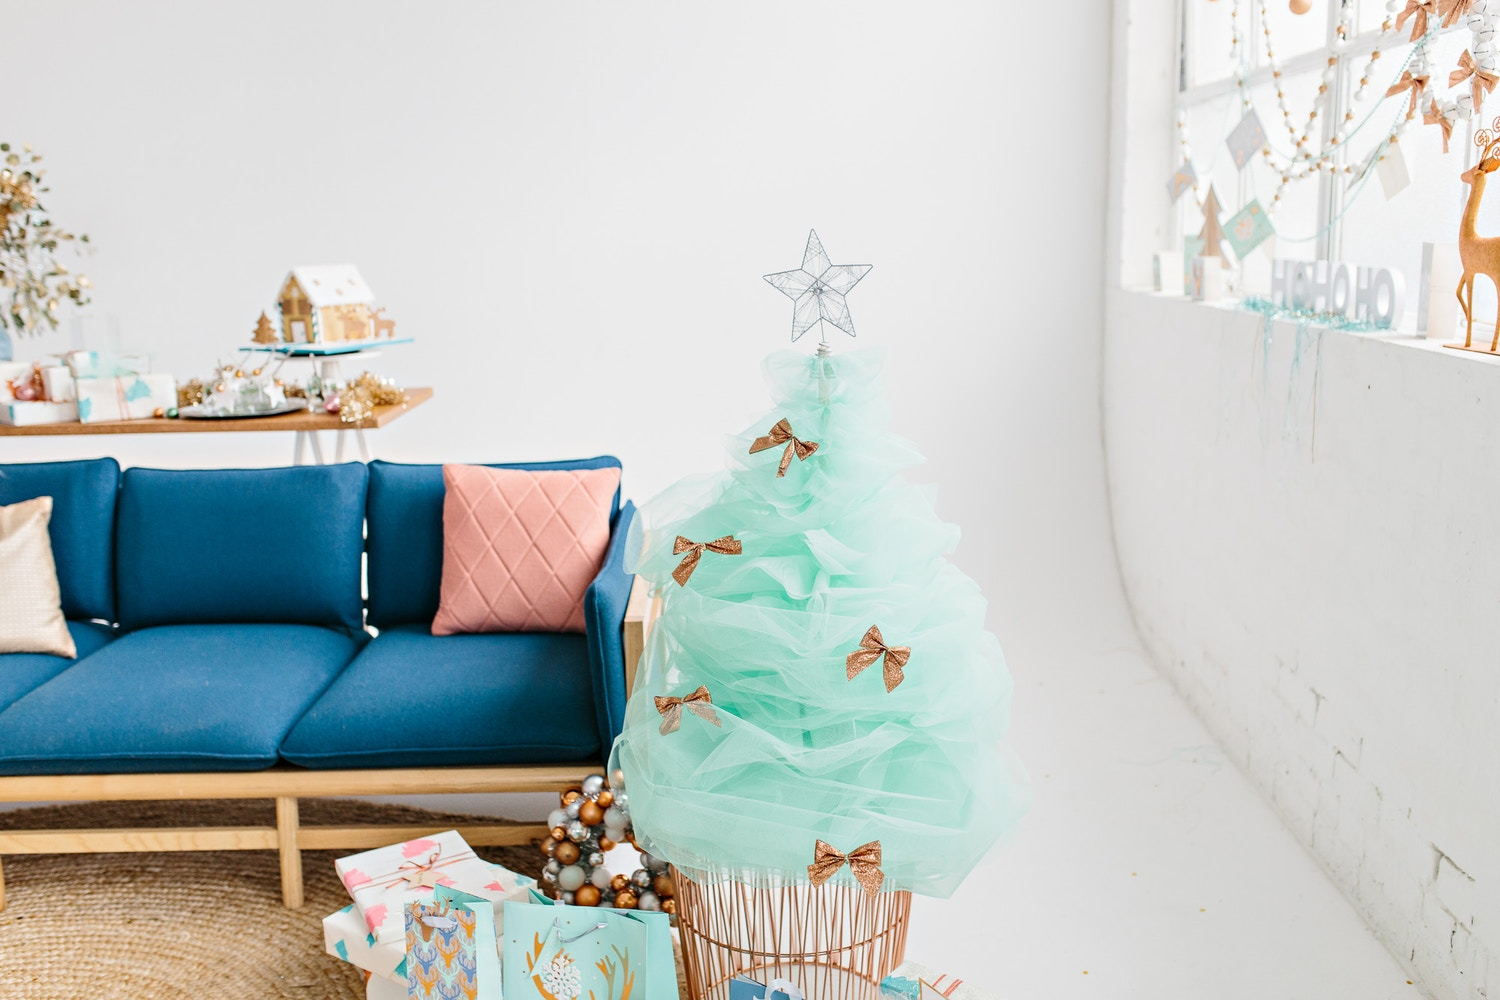 #MakeItCrafty with Spotlight: Tulle Tree DIY